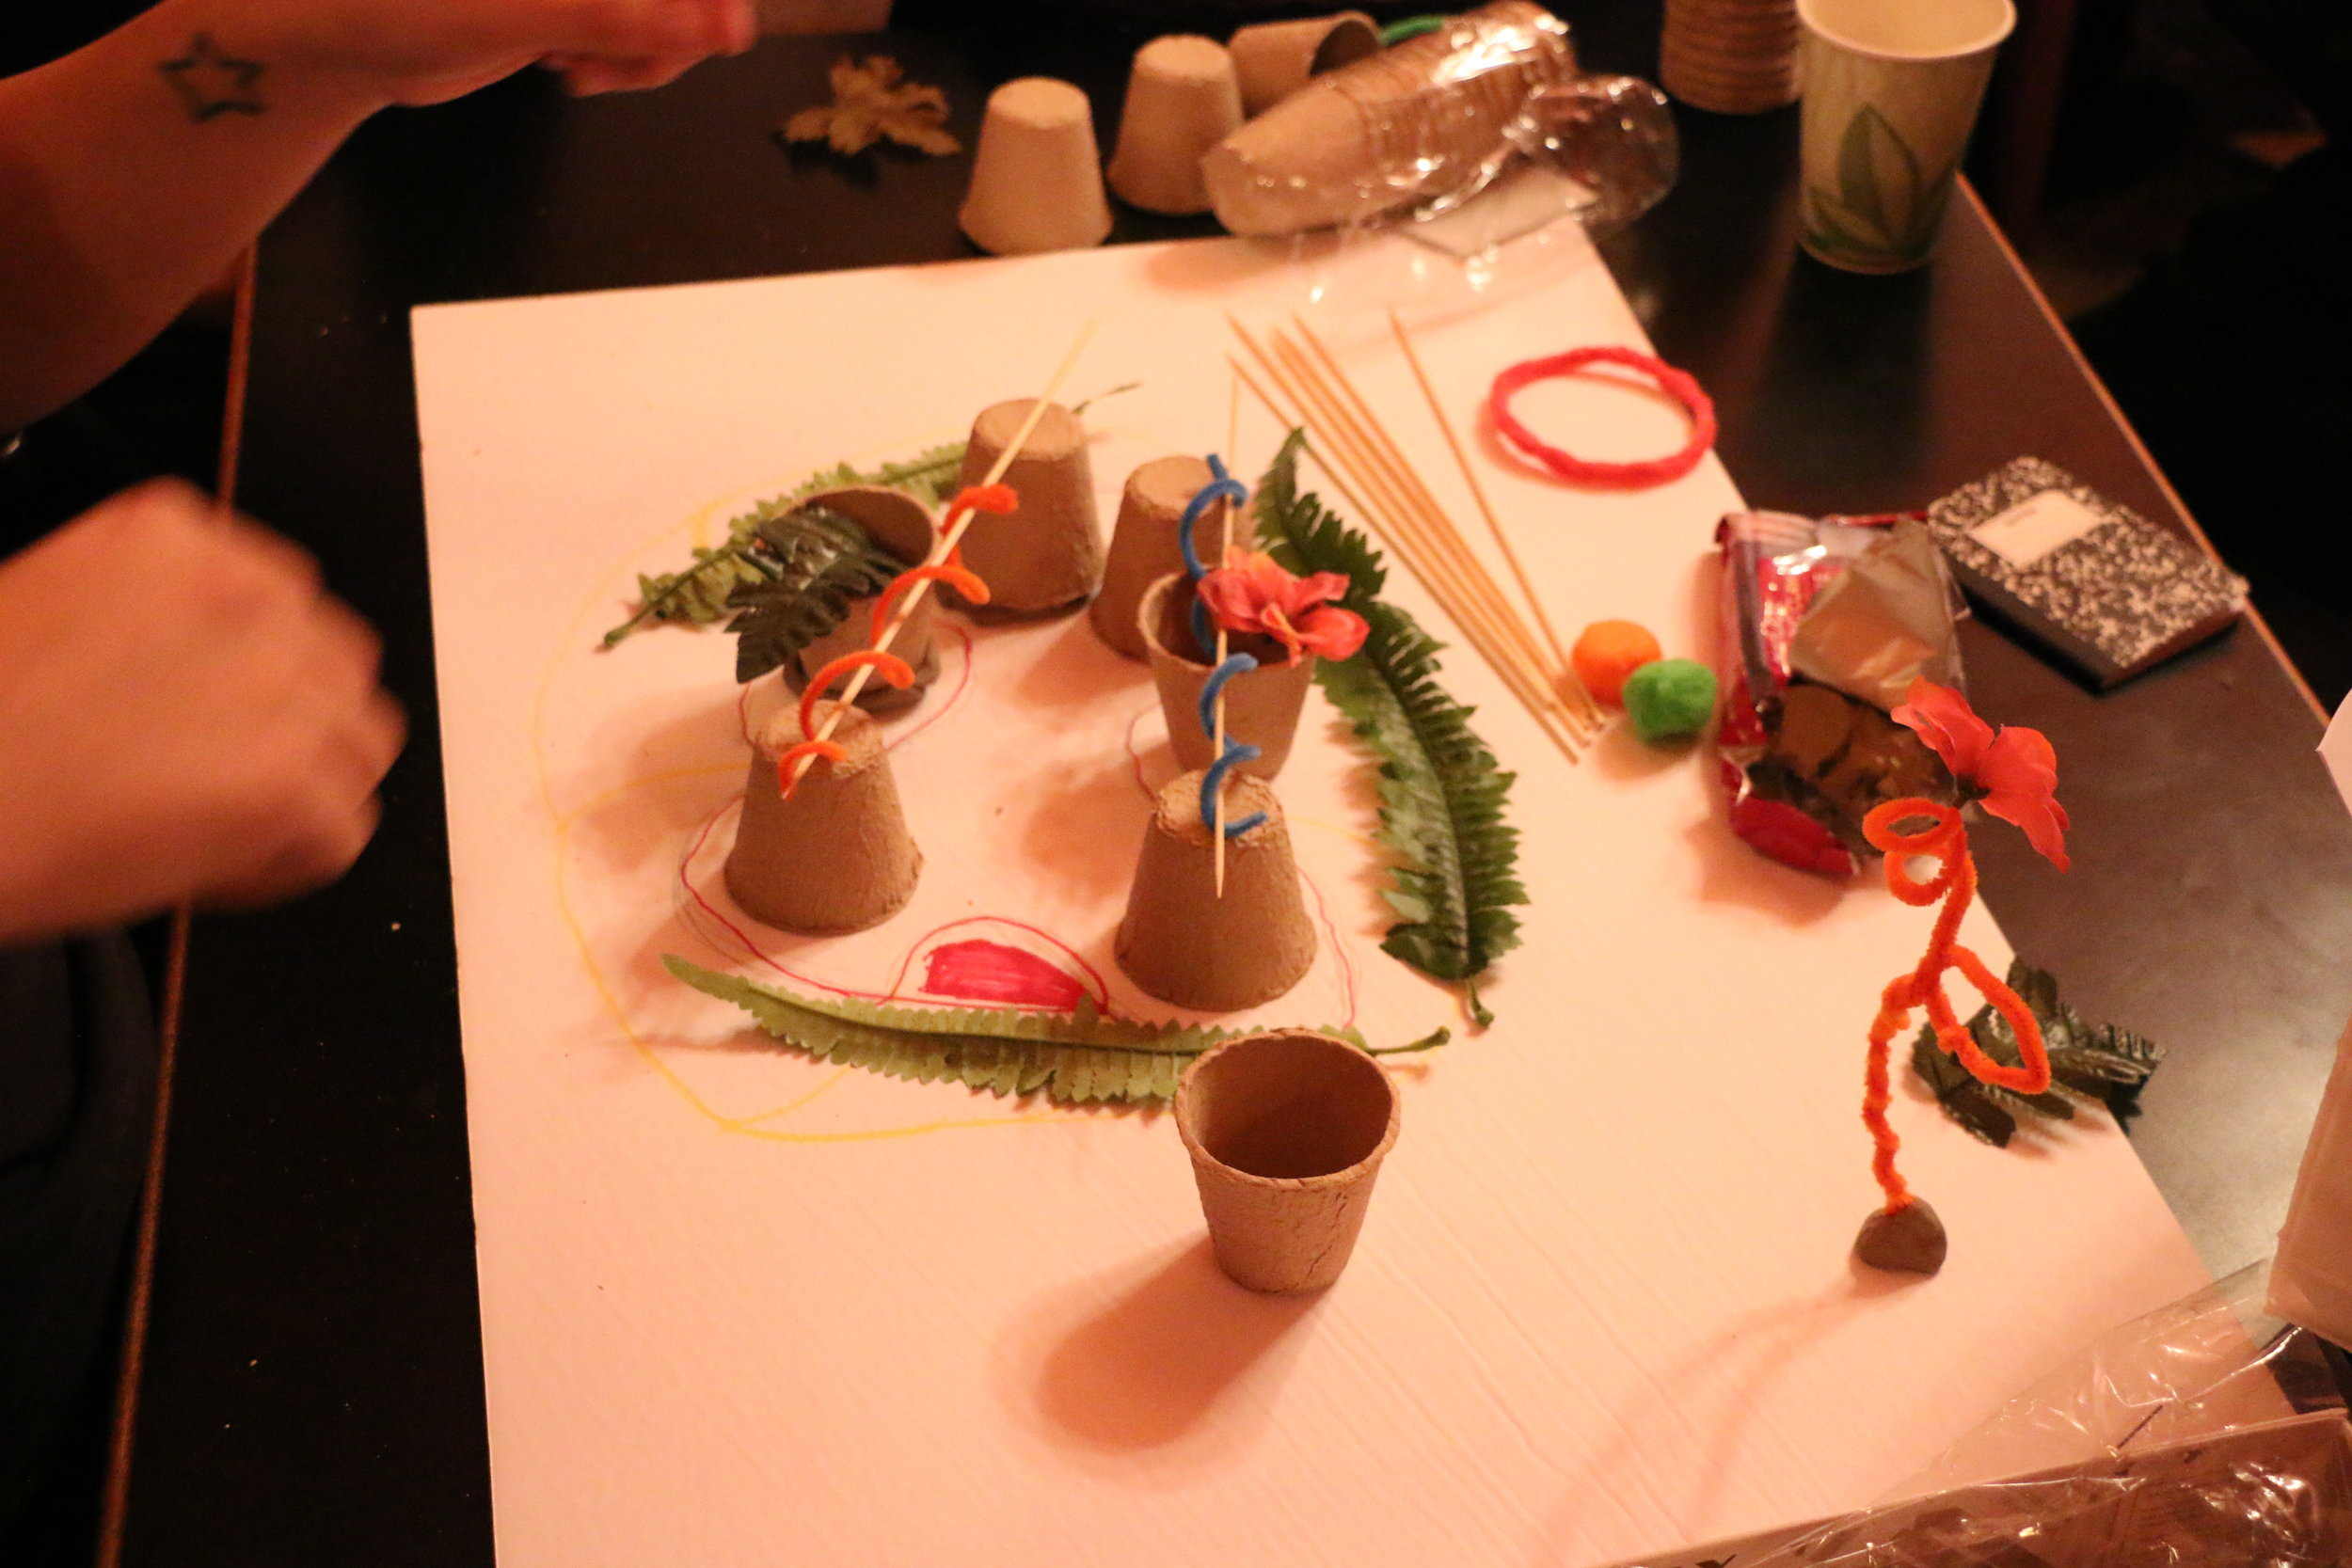 Participants take part in a craft-based warm up exercise to create models of imaginary spaces. Photo: Glenn Knockwood.